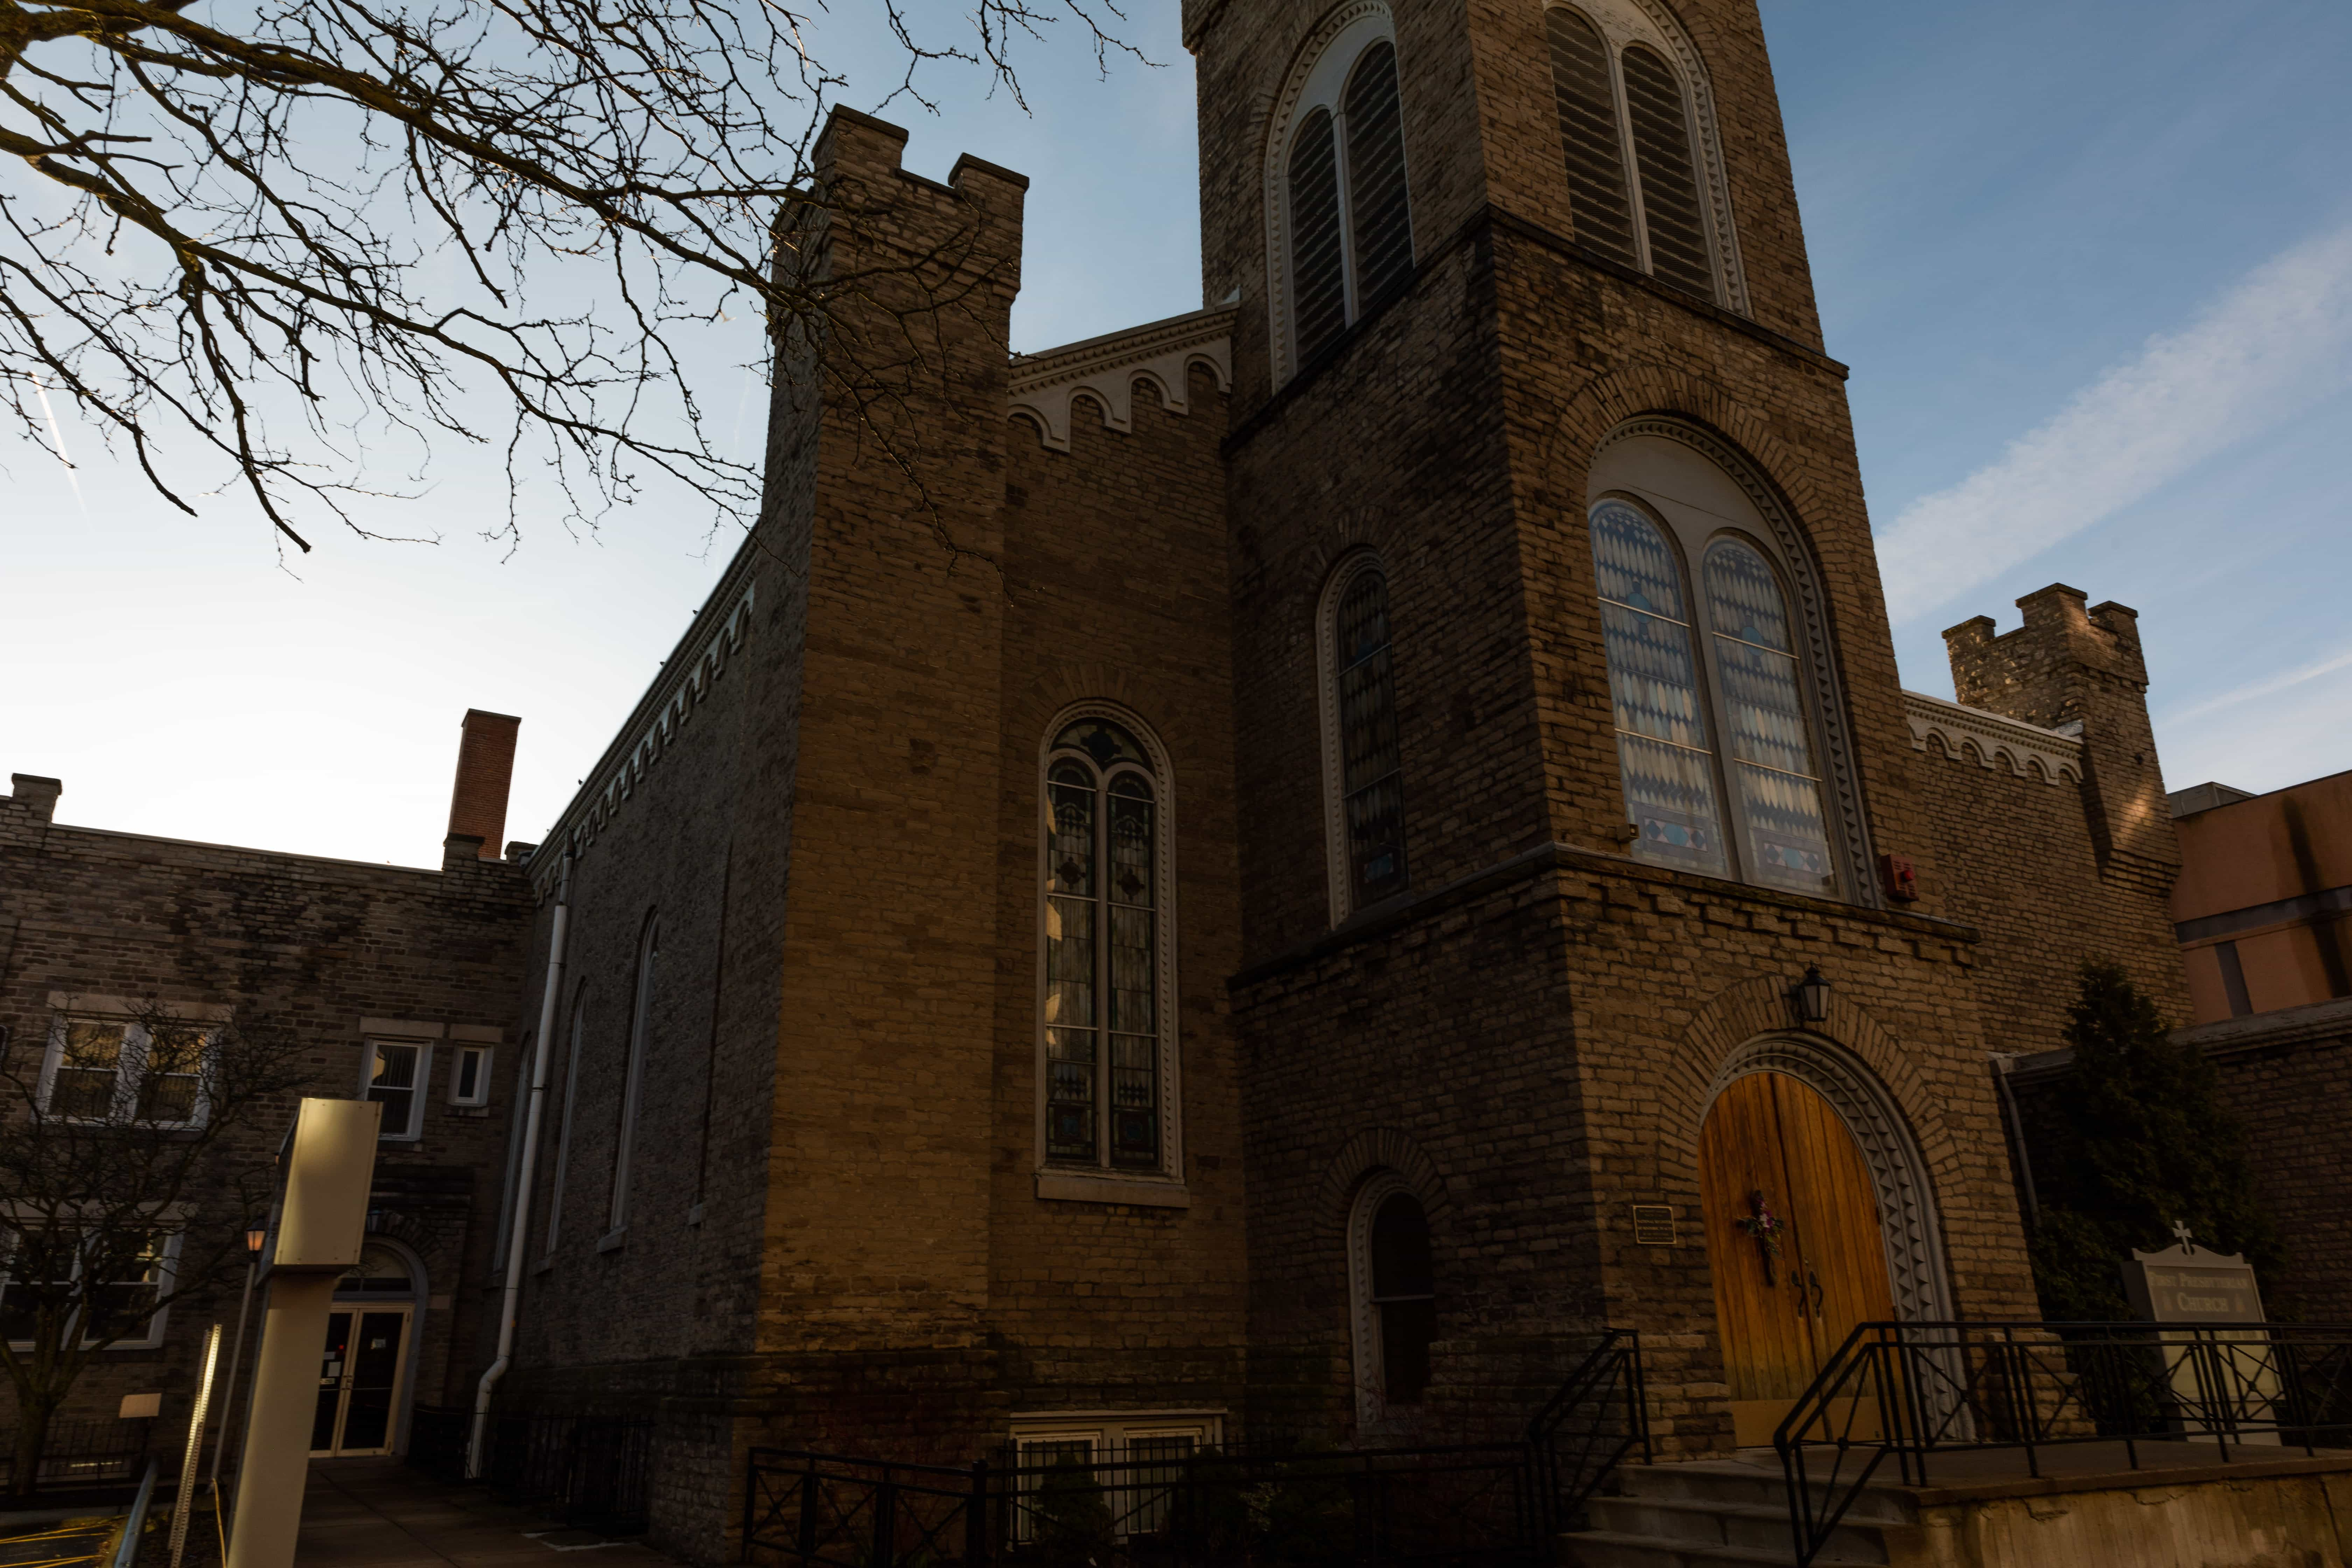 First Presbyterian Church is located on 1st Street in Niagara Falls NY.